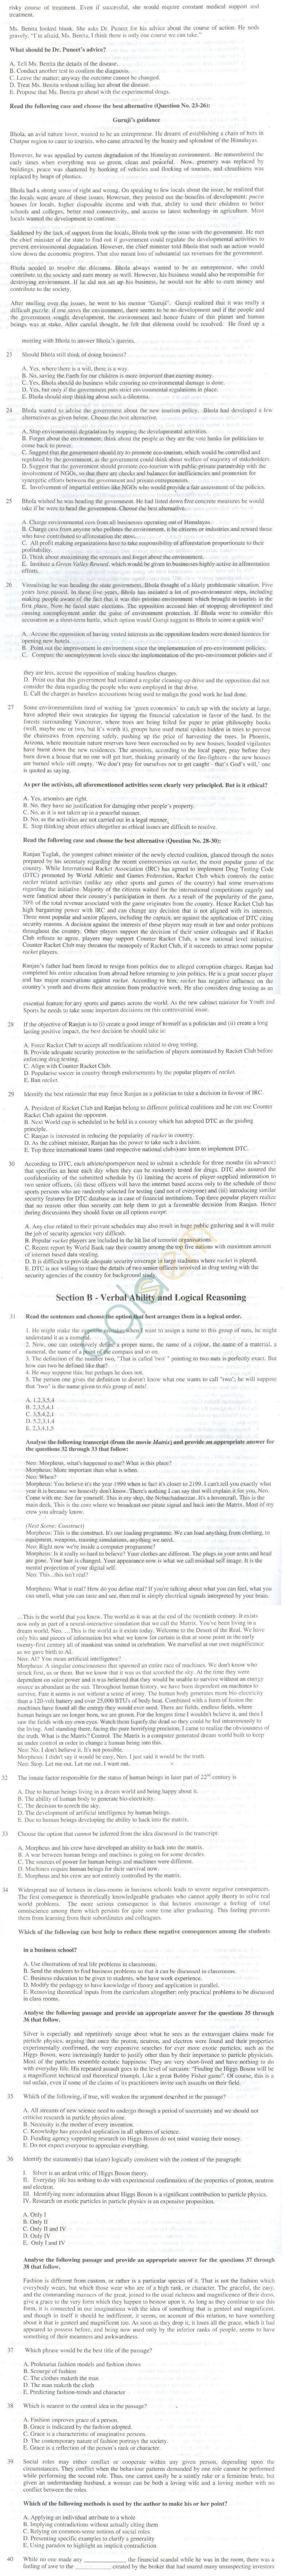 XAT 2010 Question Paper with Solutions